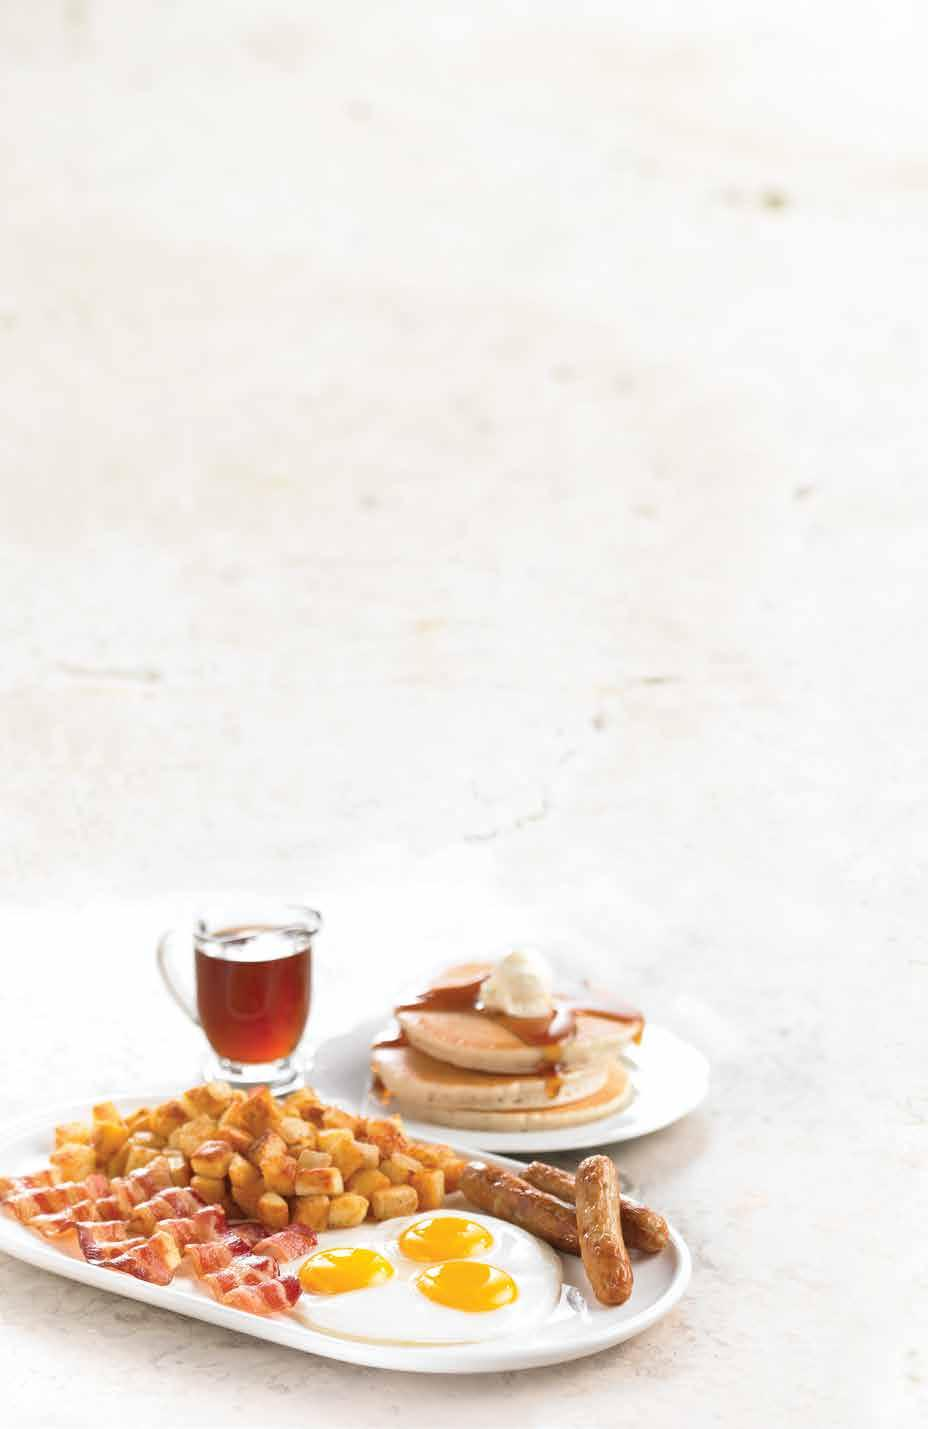 COCO S BREAKFAST SPECIAL A great way to start every day at a great price!